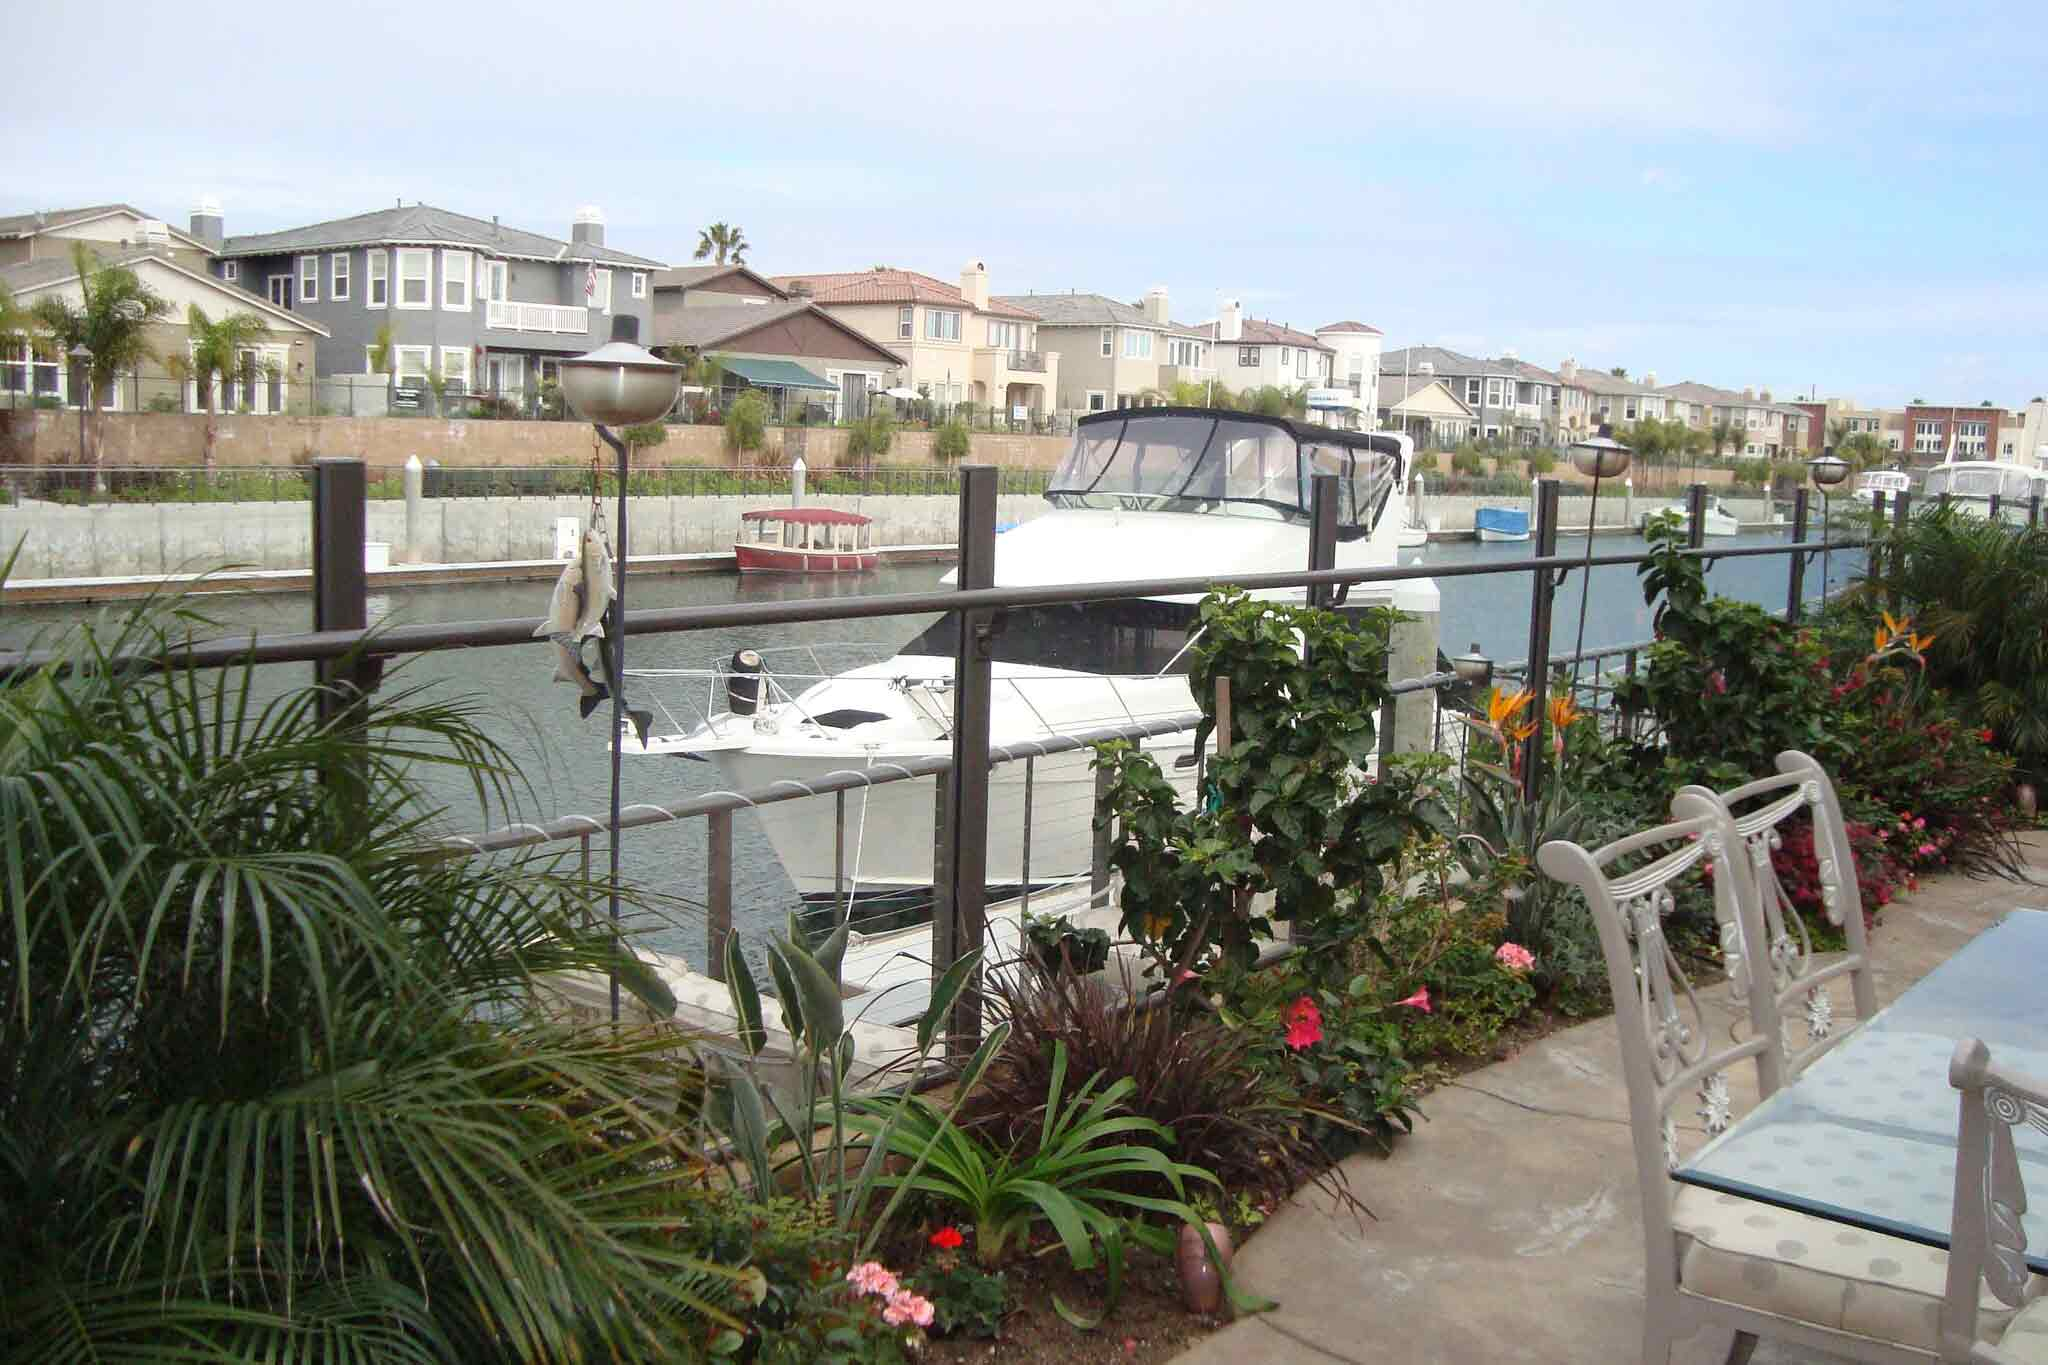 arlene oxnard dock beach homes and condos pictures